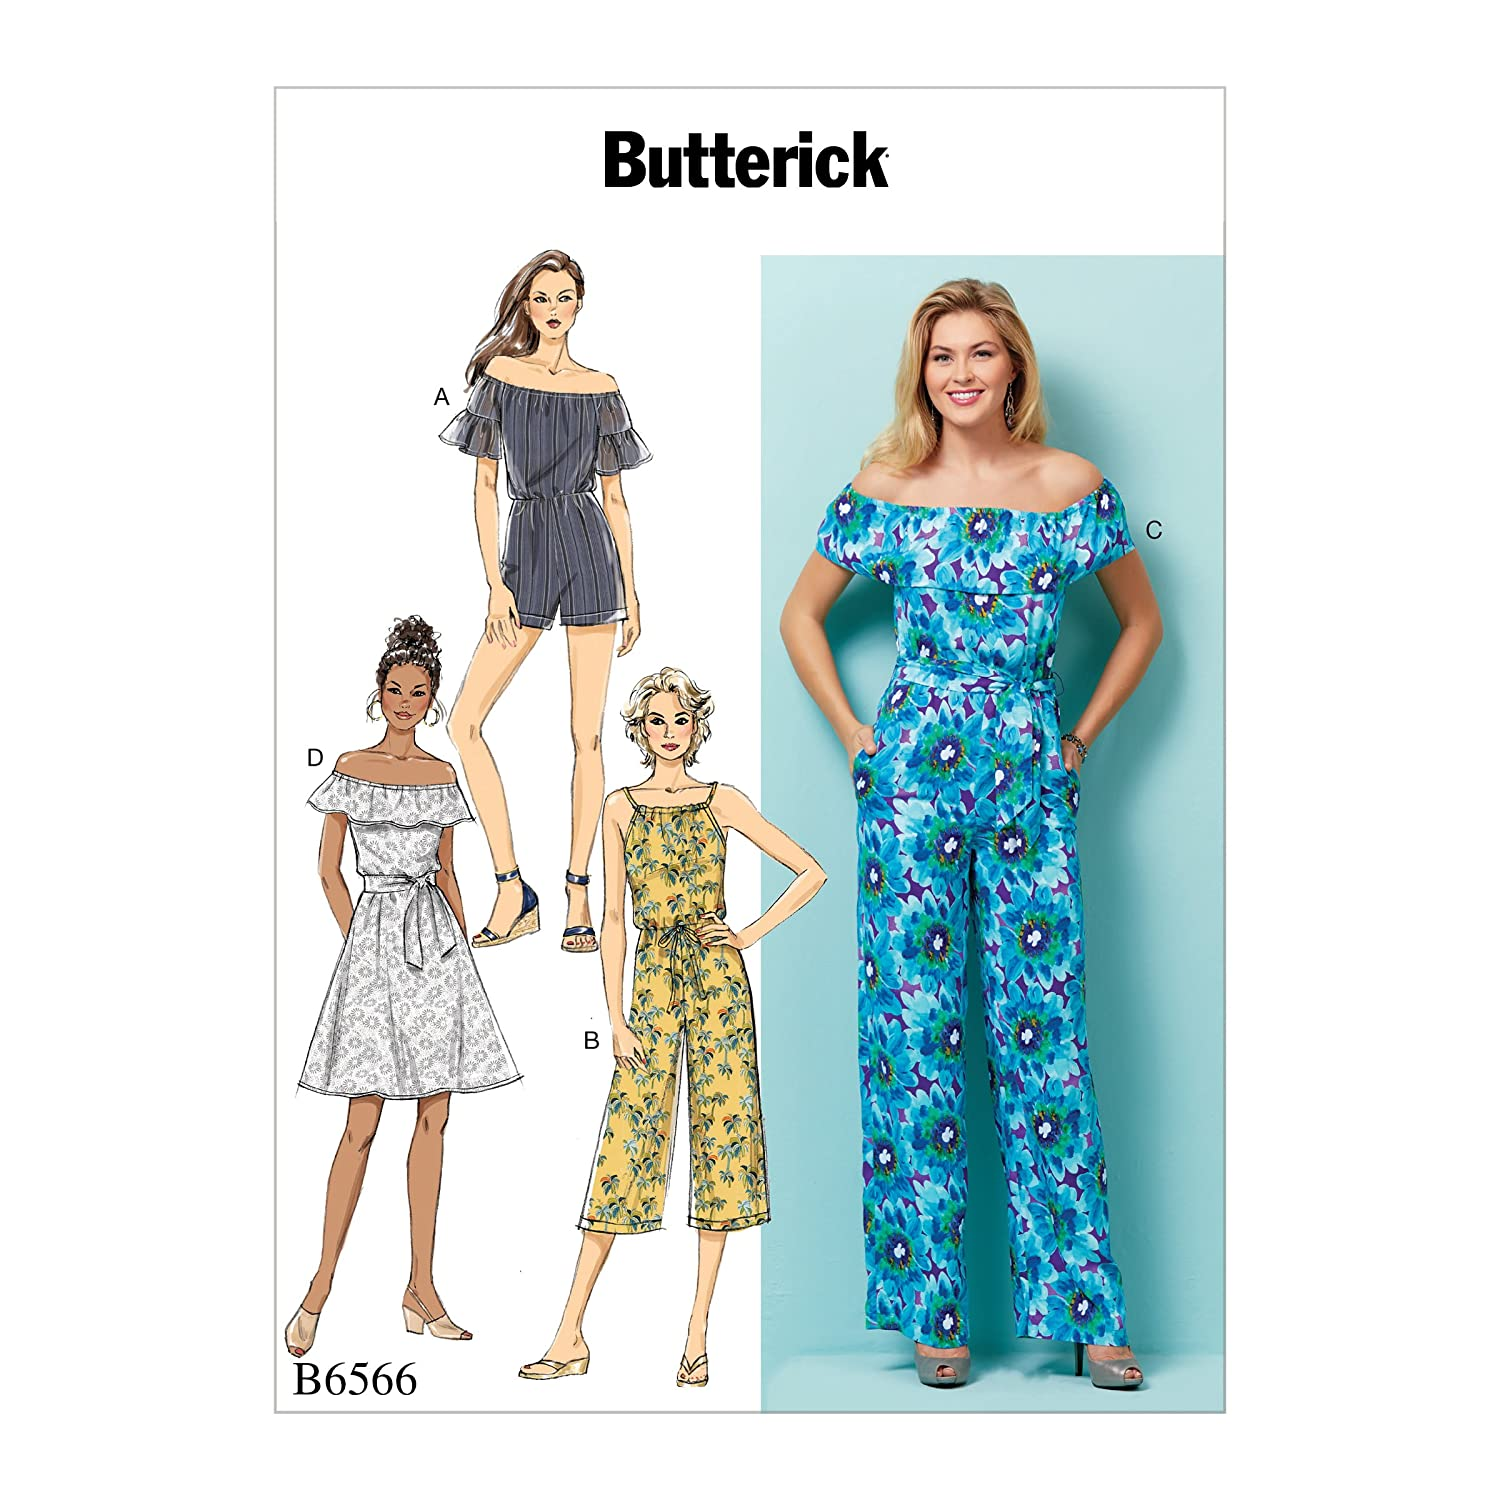 Butterick Patterns 6566 Y Sizes X-Small-Medium Misses' Petite Dress/Romper/Jumpsuit and Sash, Tissue, Multi-Colour, 17 x 0.5 x 22 cm The McCall Pattern Co B65660Y0